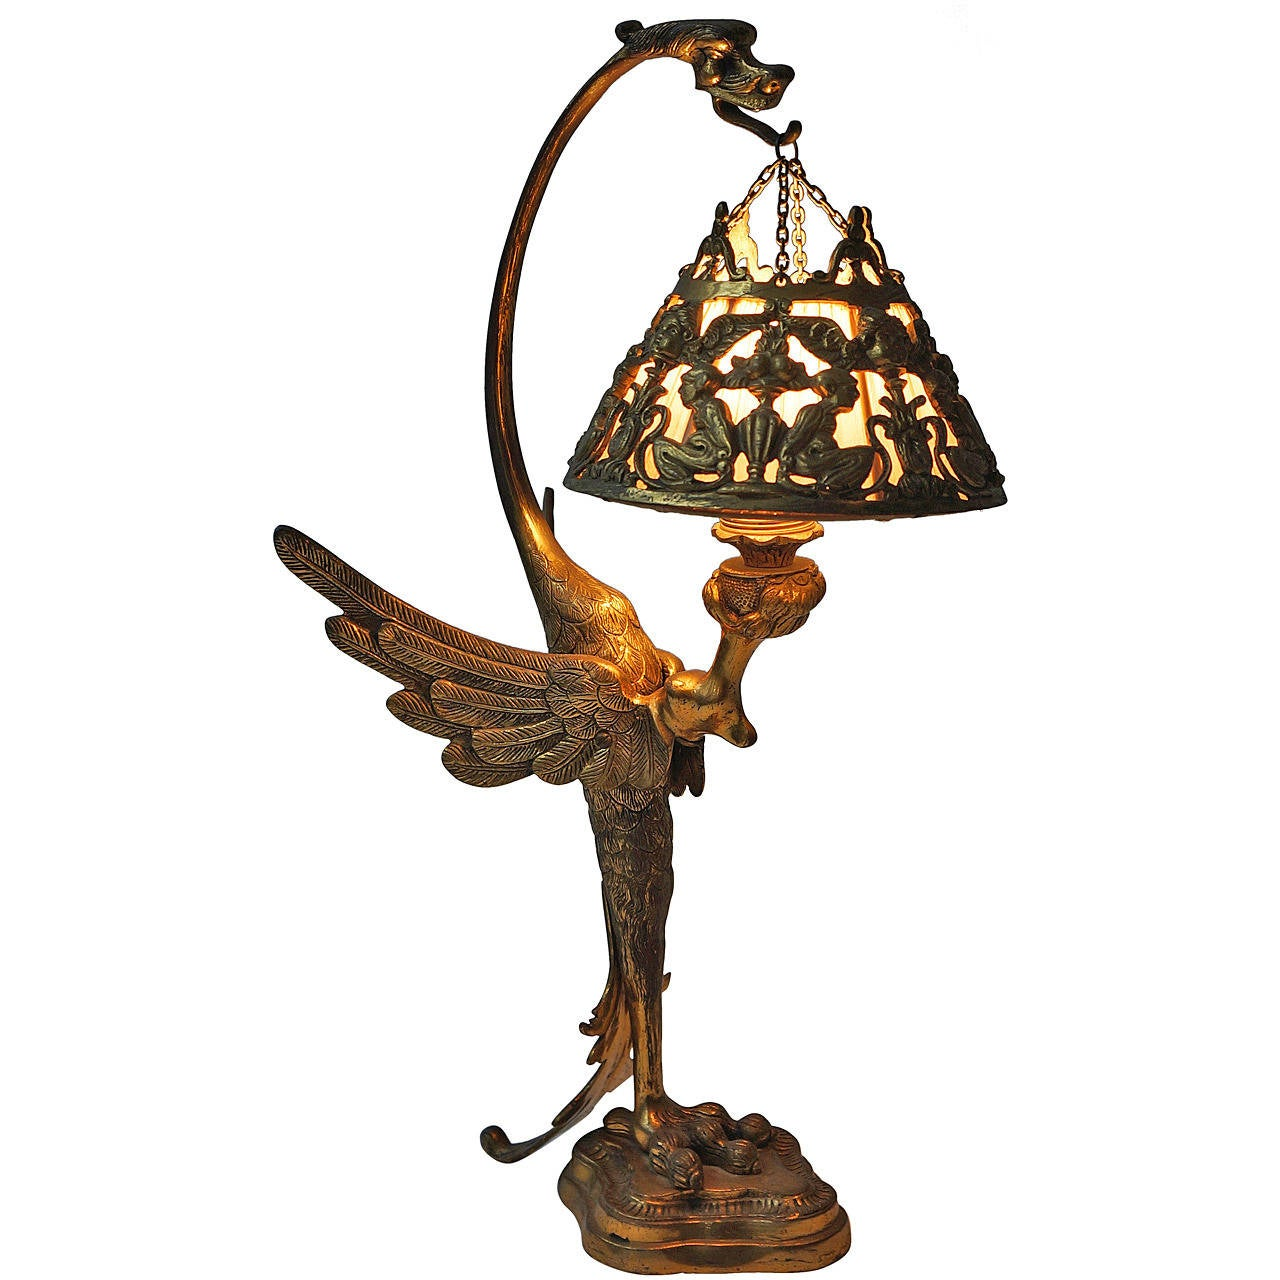 Artistic Desk Lamps French Art Nouveau Table Lamp At 1stdibs